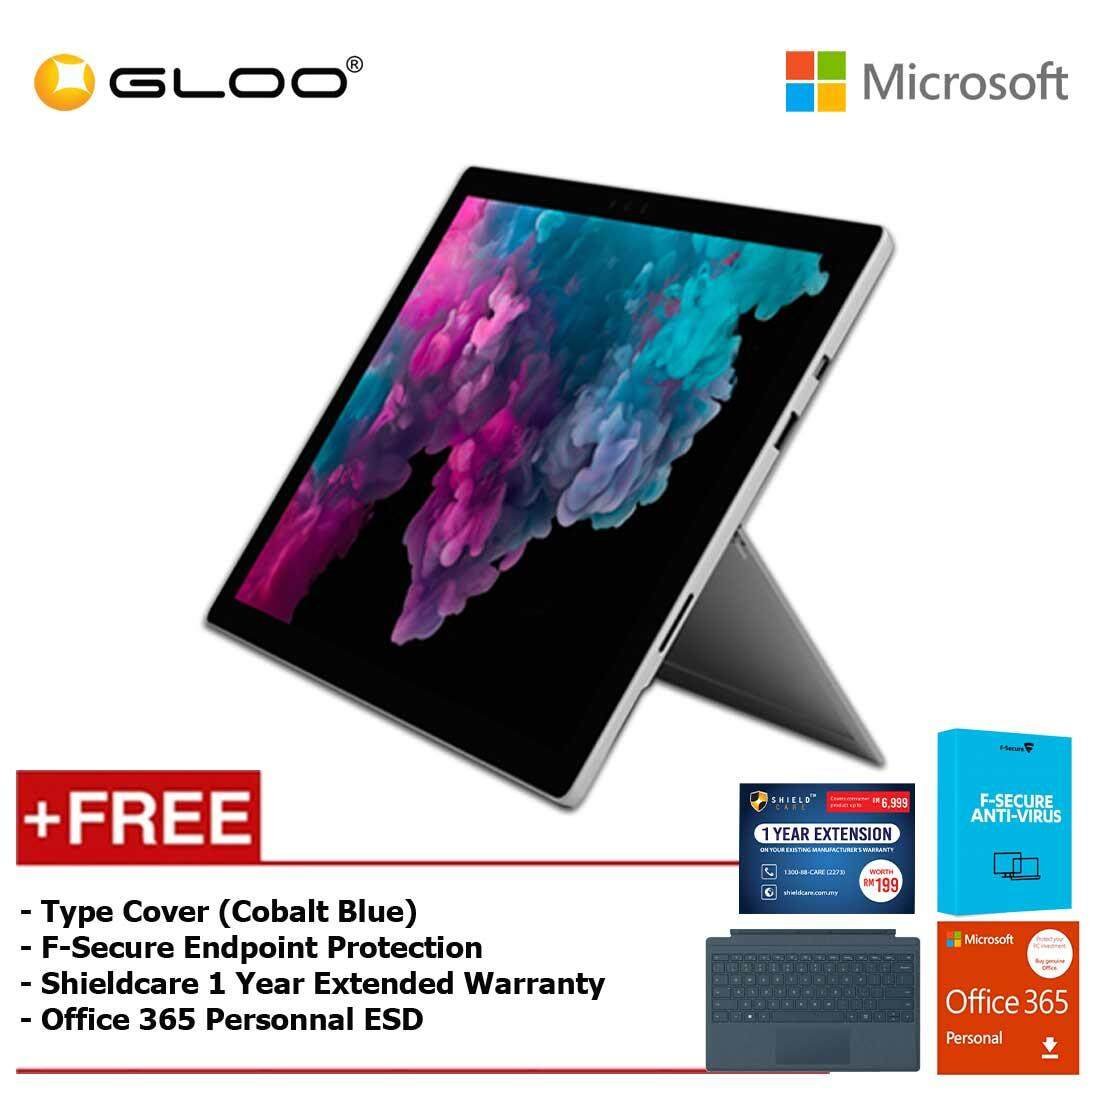 Microsoft Surface Pro 6 Core i5/8GB RAM - 256GB + Type Cover Cobalt Blue + Office 365 Personal (ESD) + F-Secure Endpoint Protection + Shieldcare 1 Year Extended Warranty Malaysia